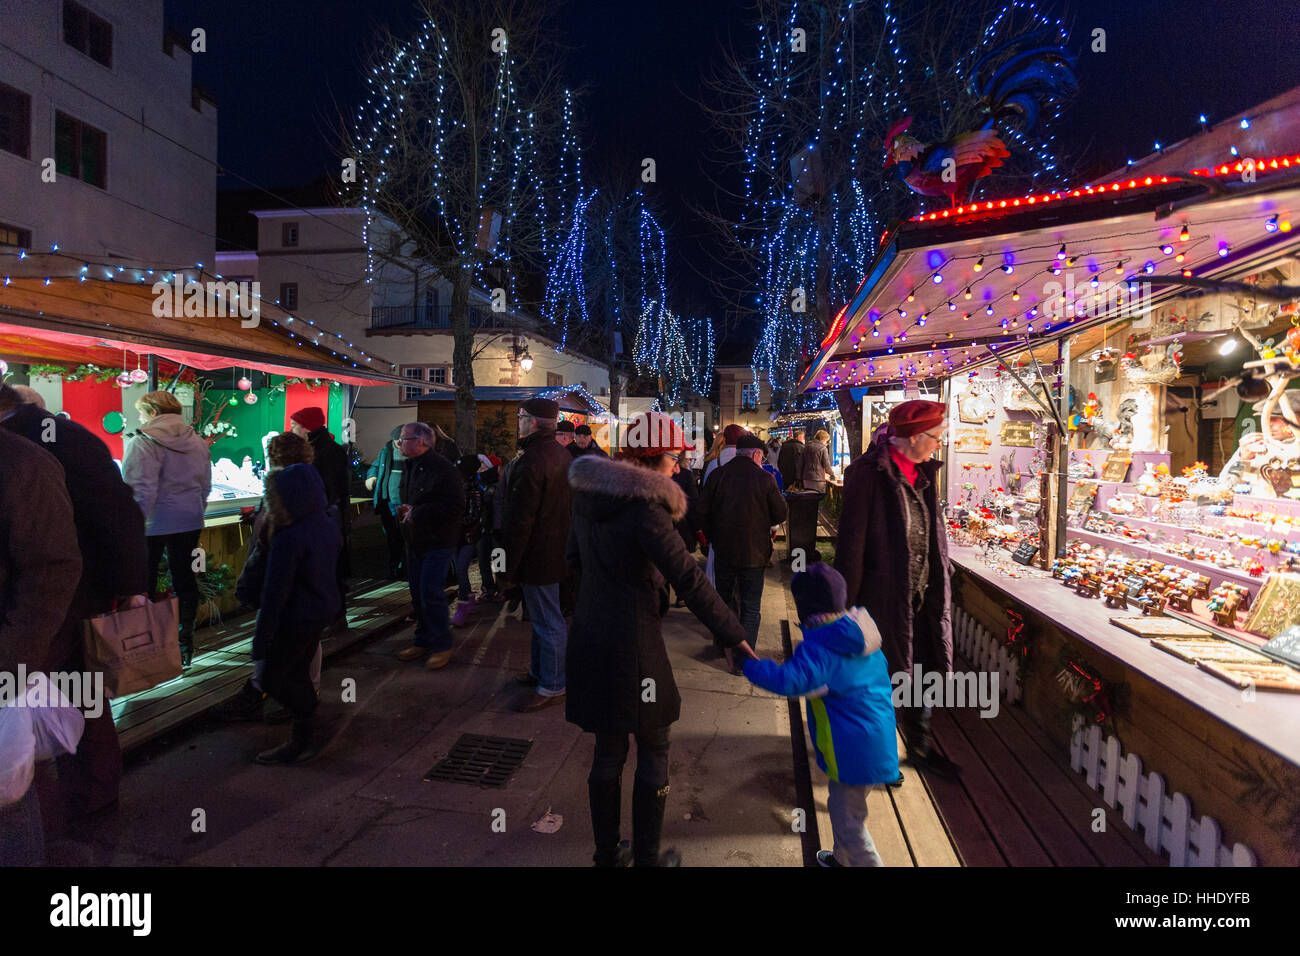 Tourists and Christmas Markets in the old medieval town of Riquewihr, Haut-Rhin department, Alsace, France - Stock Image